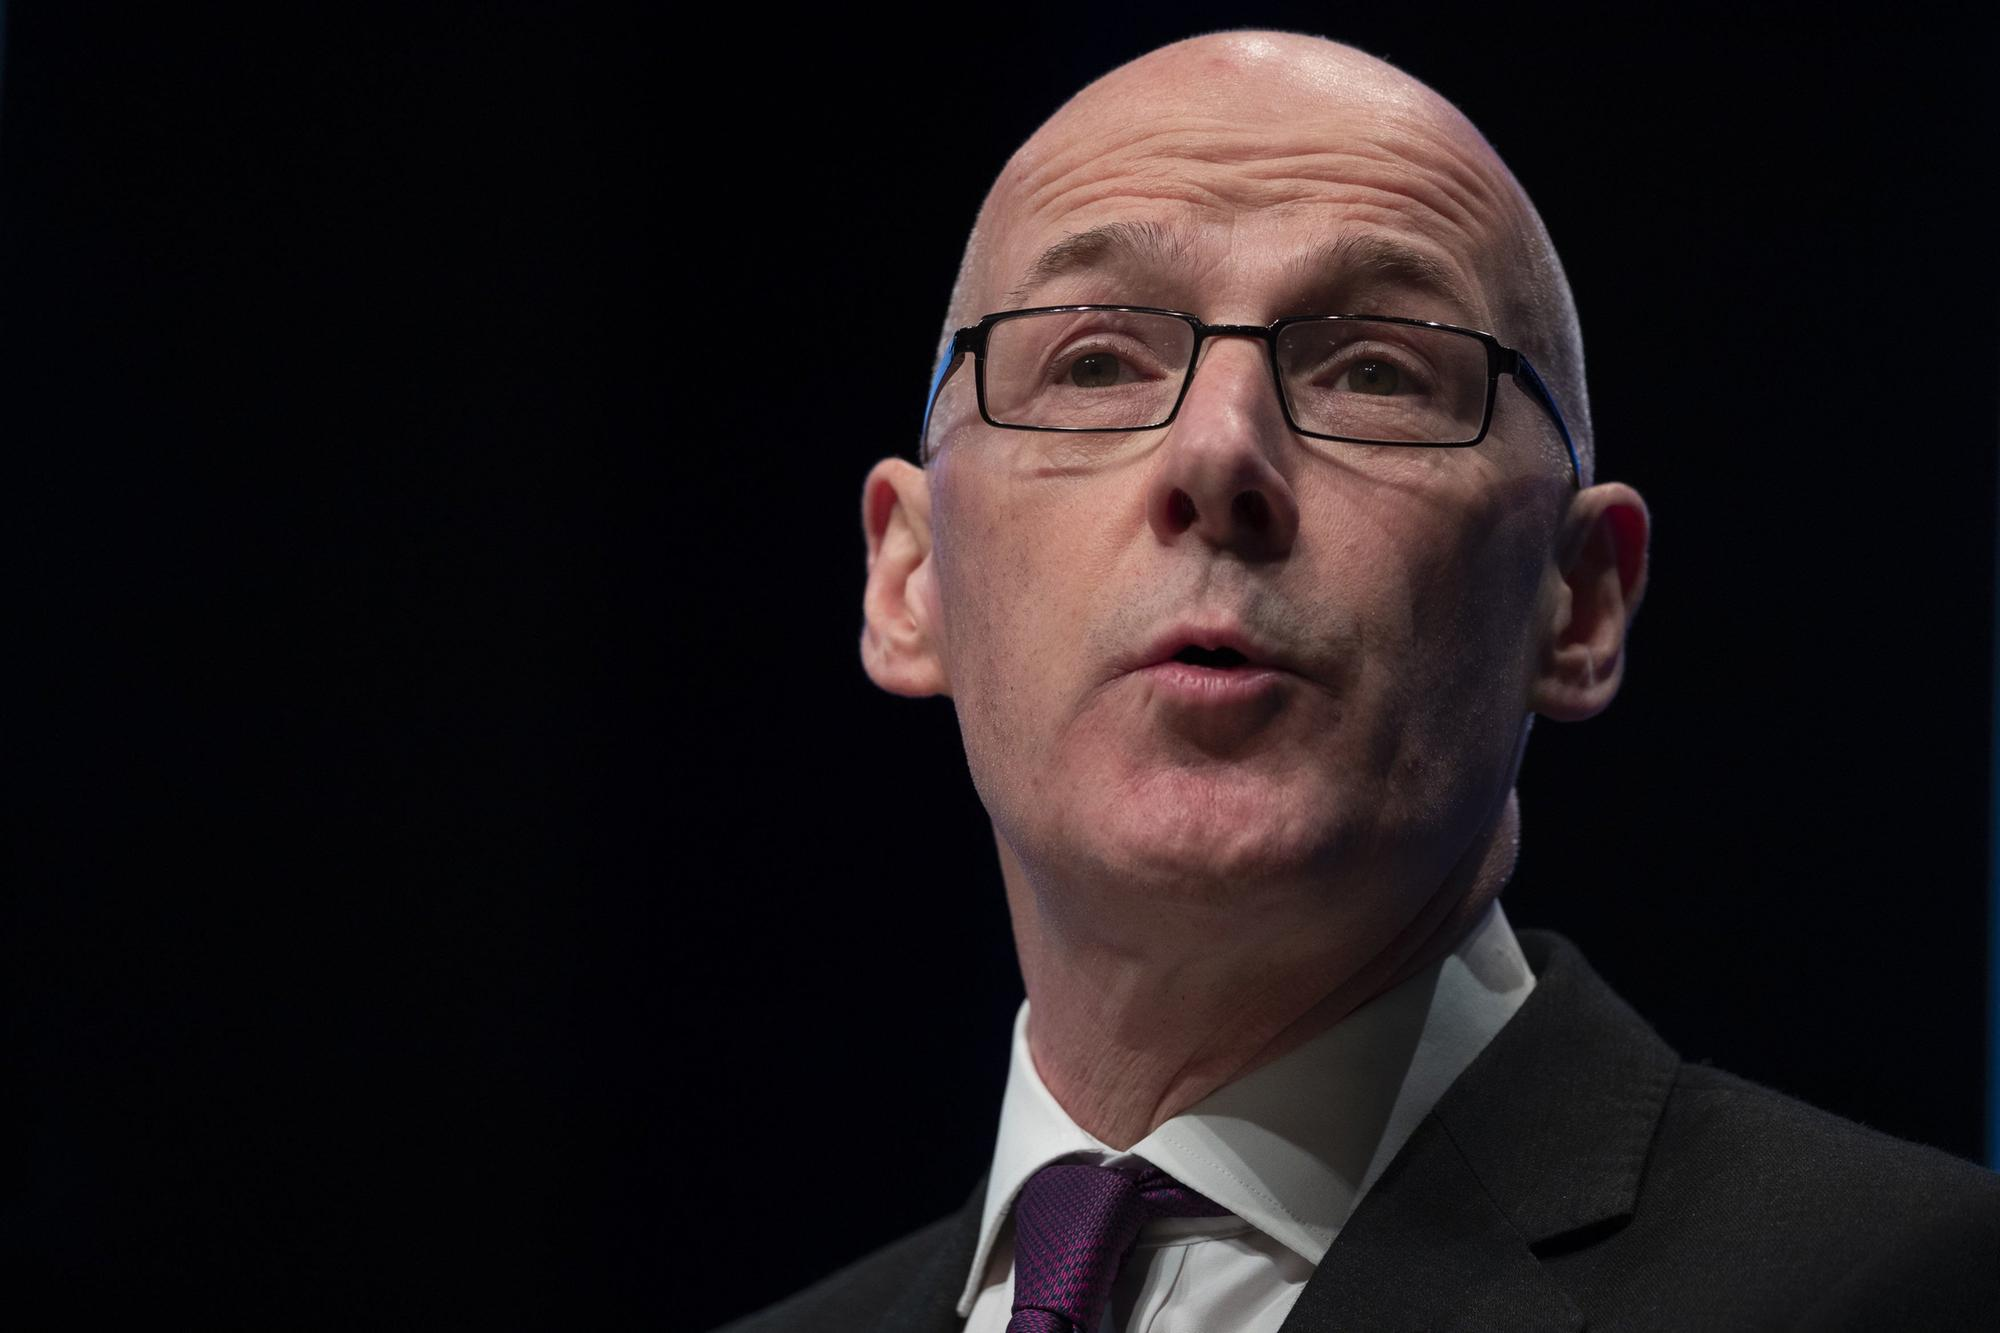 Swinney faces no confidence motion from Labour and Tories despite evidence being based on 'meaningless date'